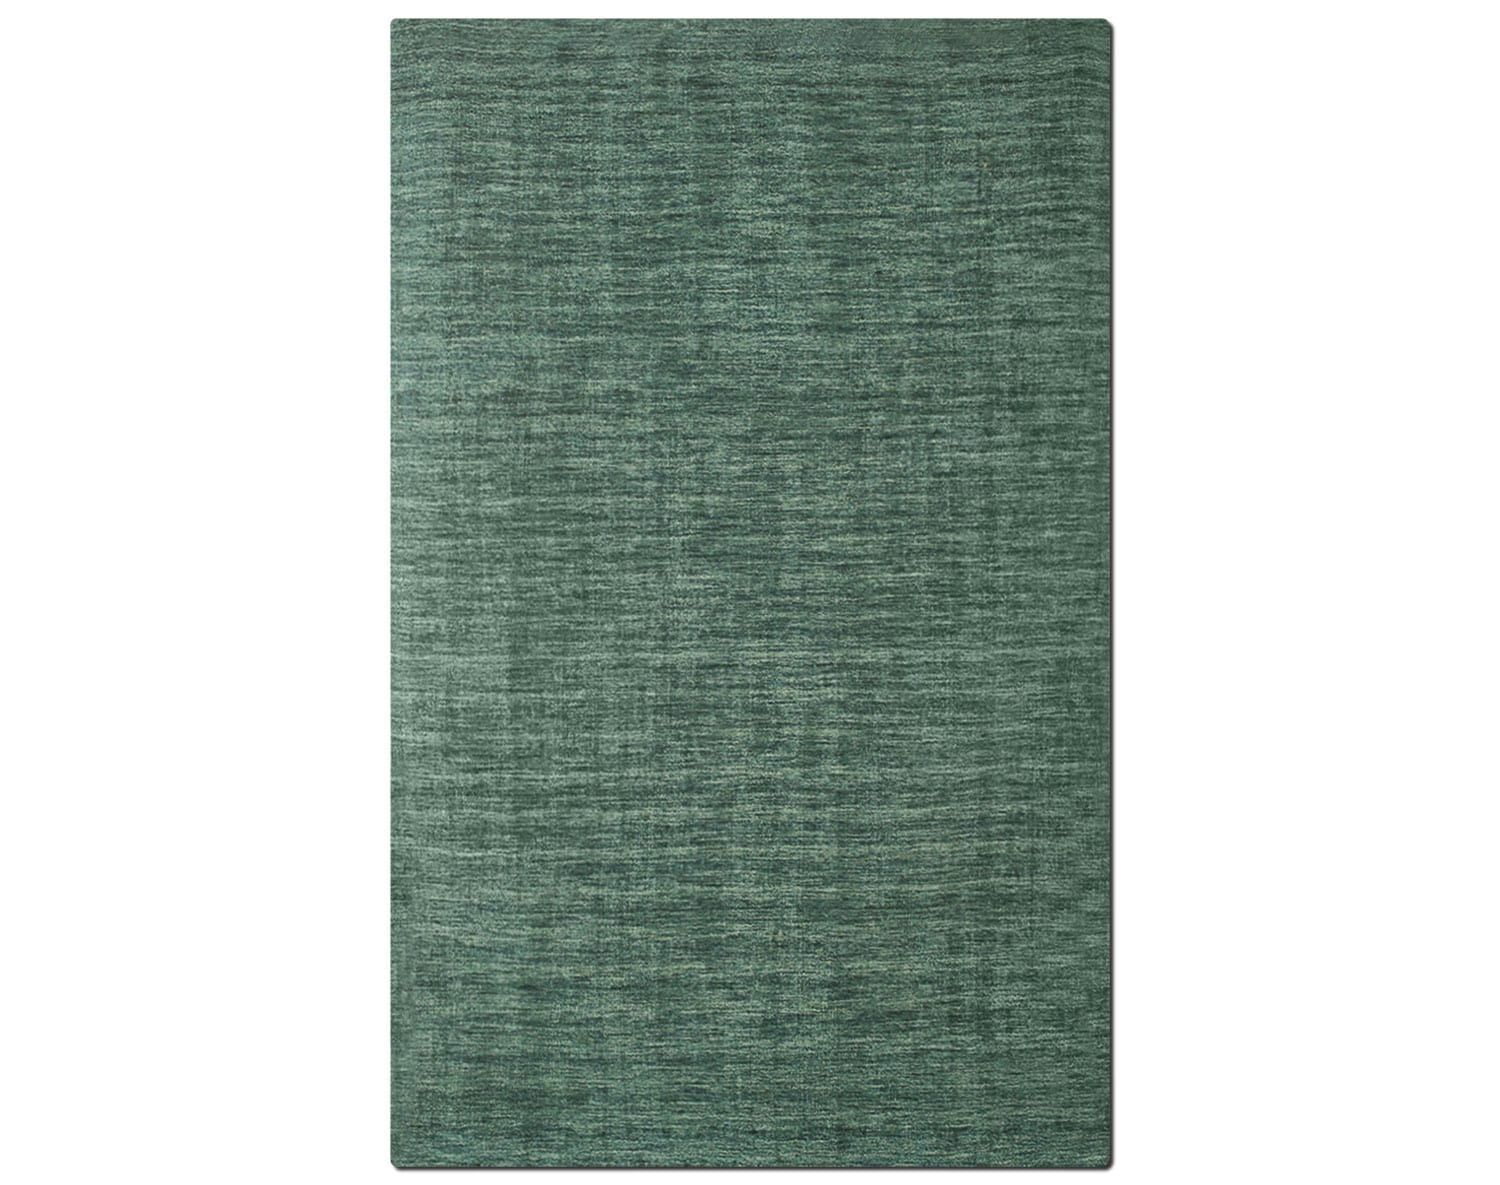 The Basics Collection - Teal